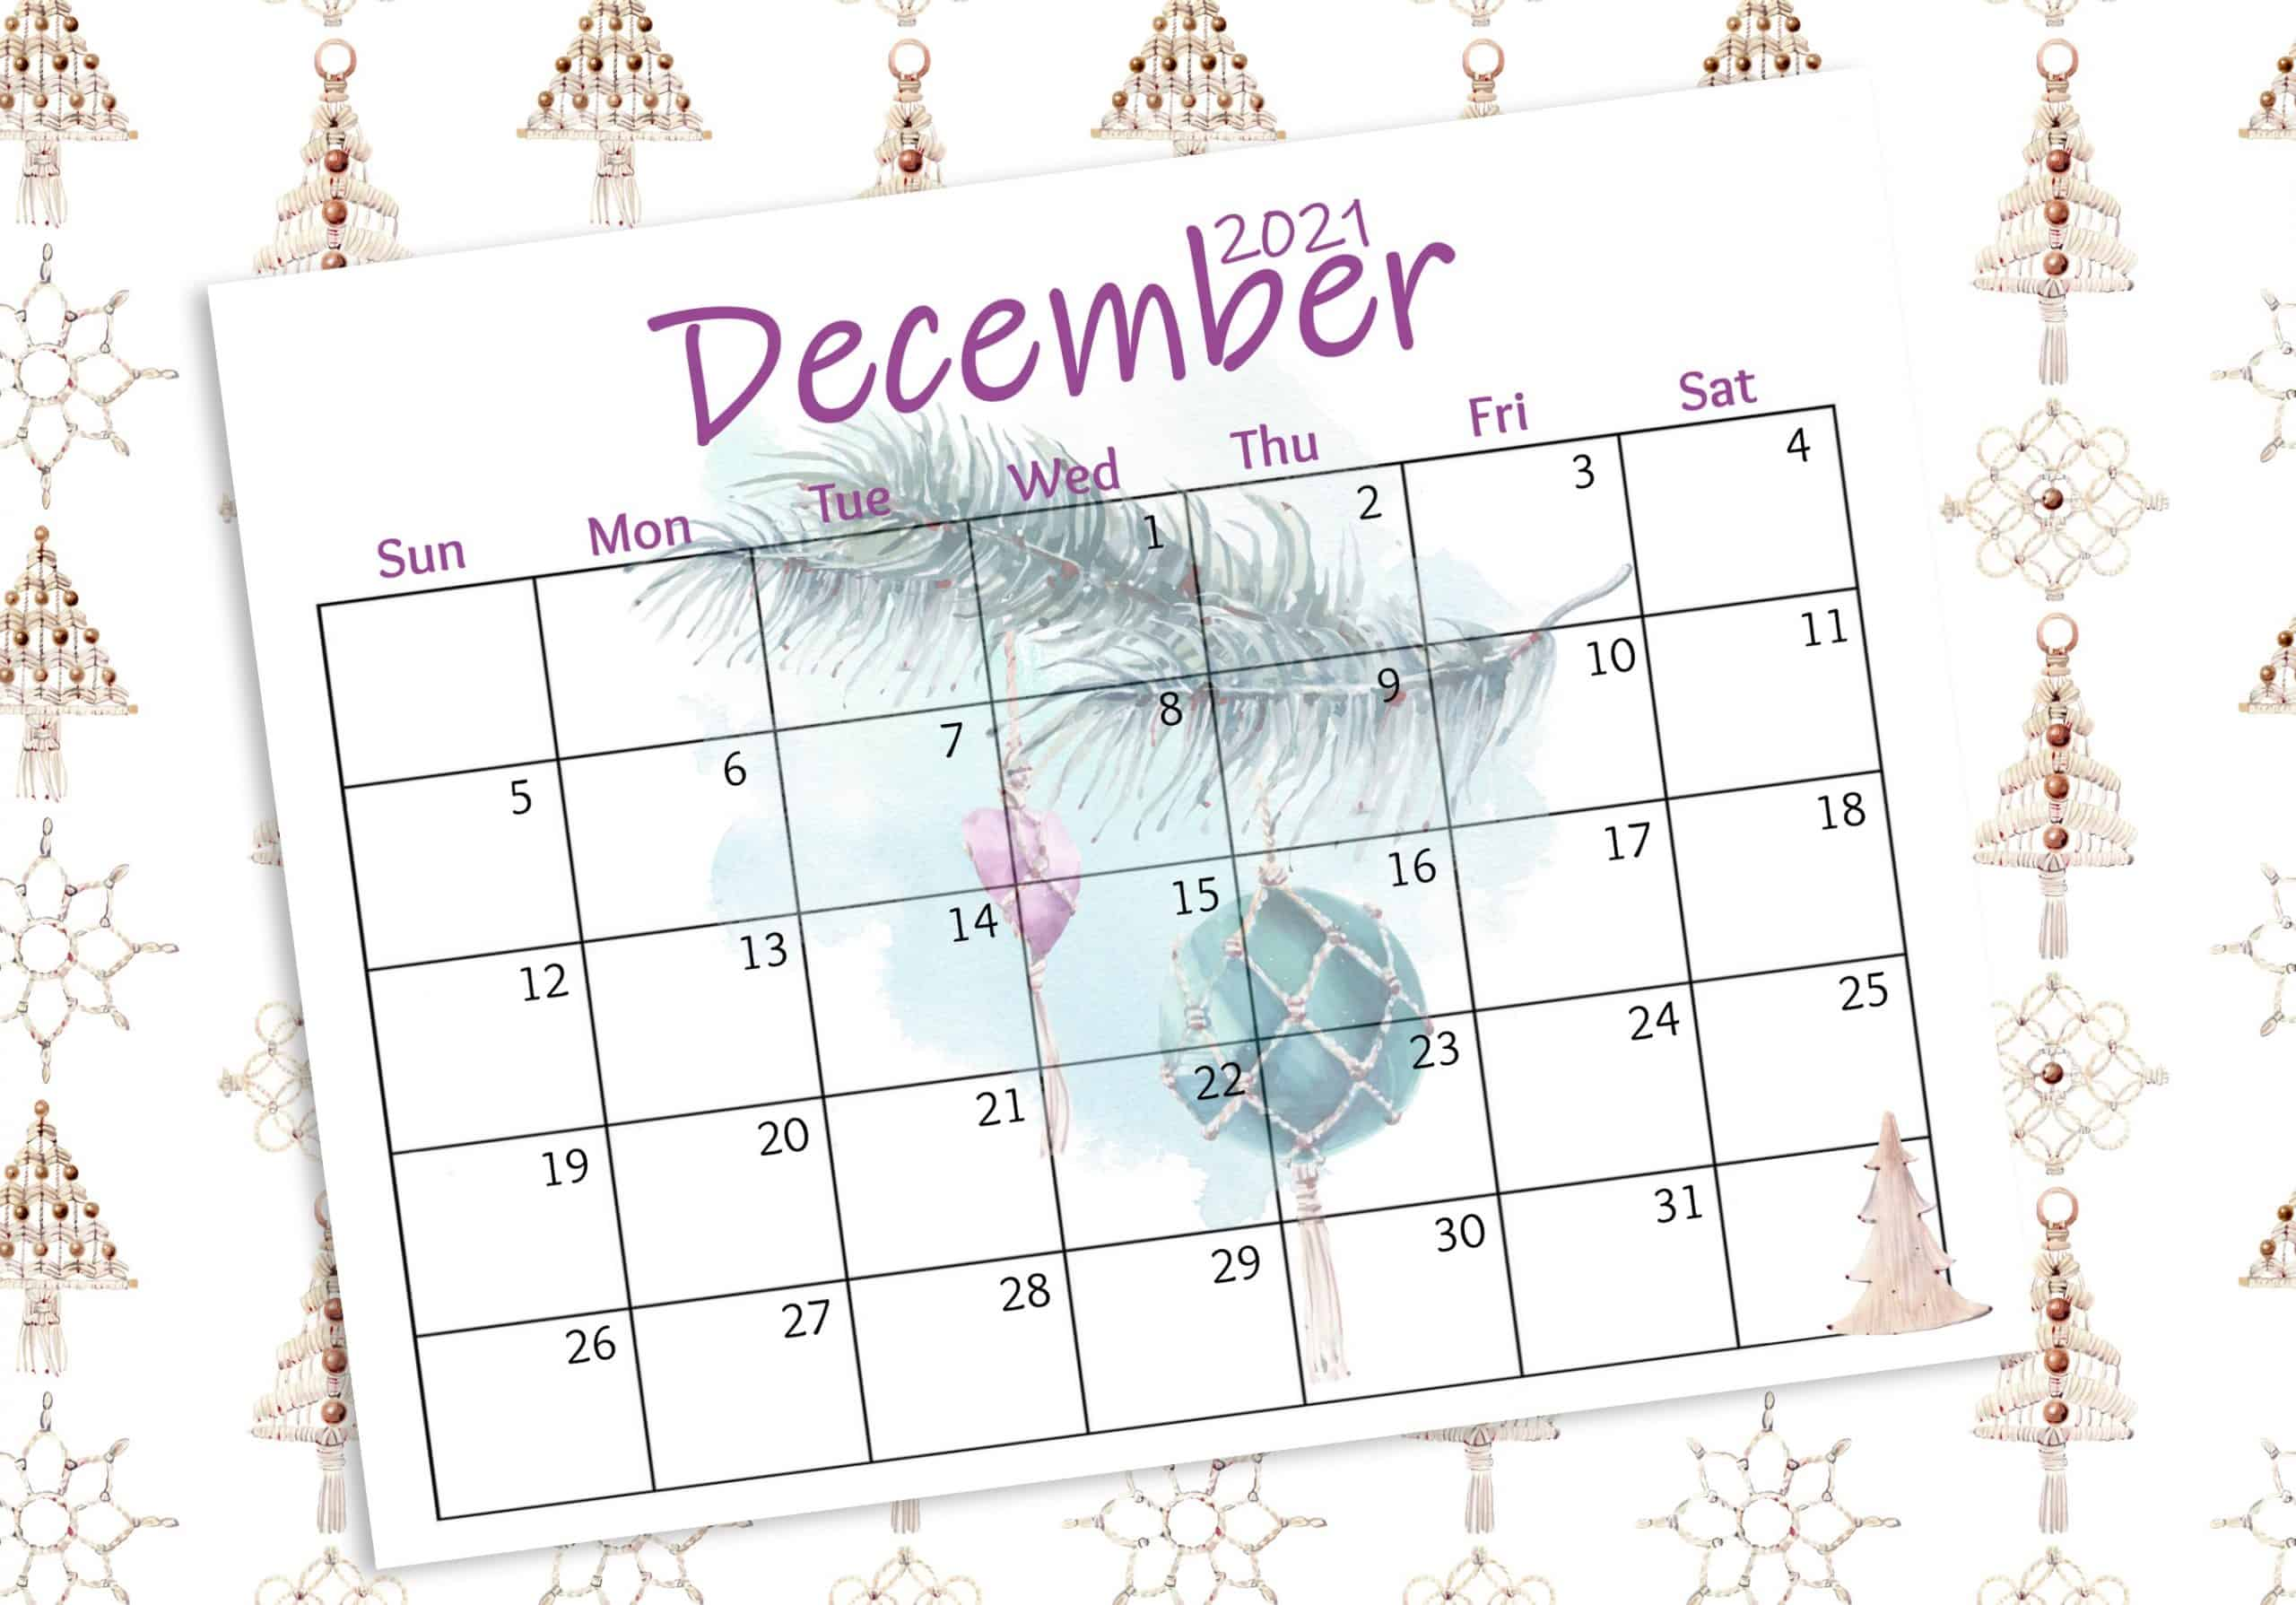 ree 2021 watercolor wall calendar december with ornament graphics and pine branches